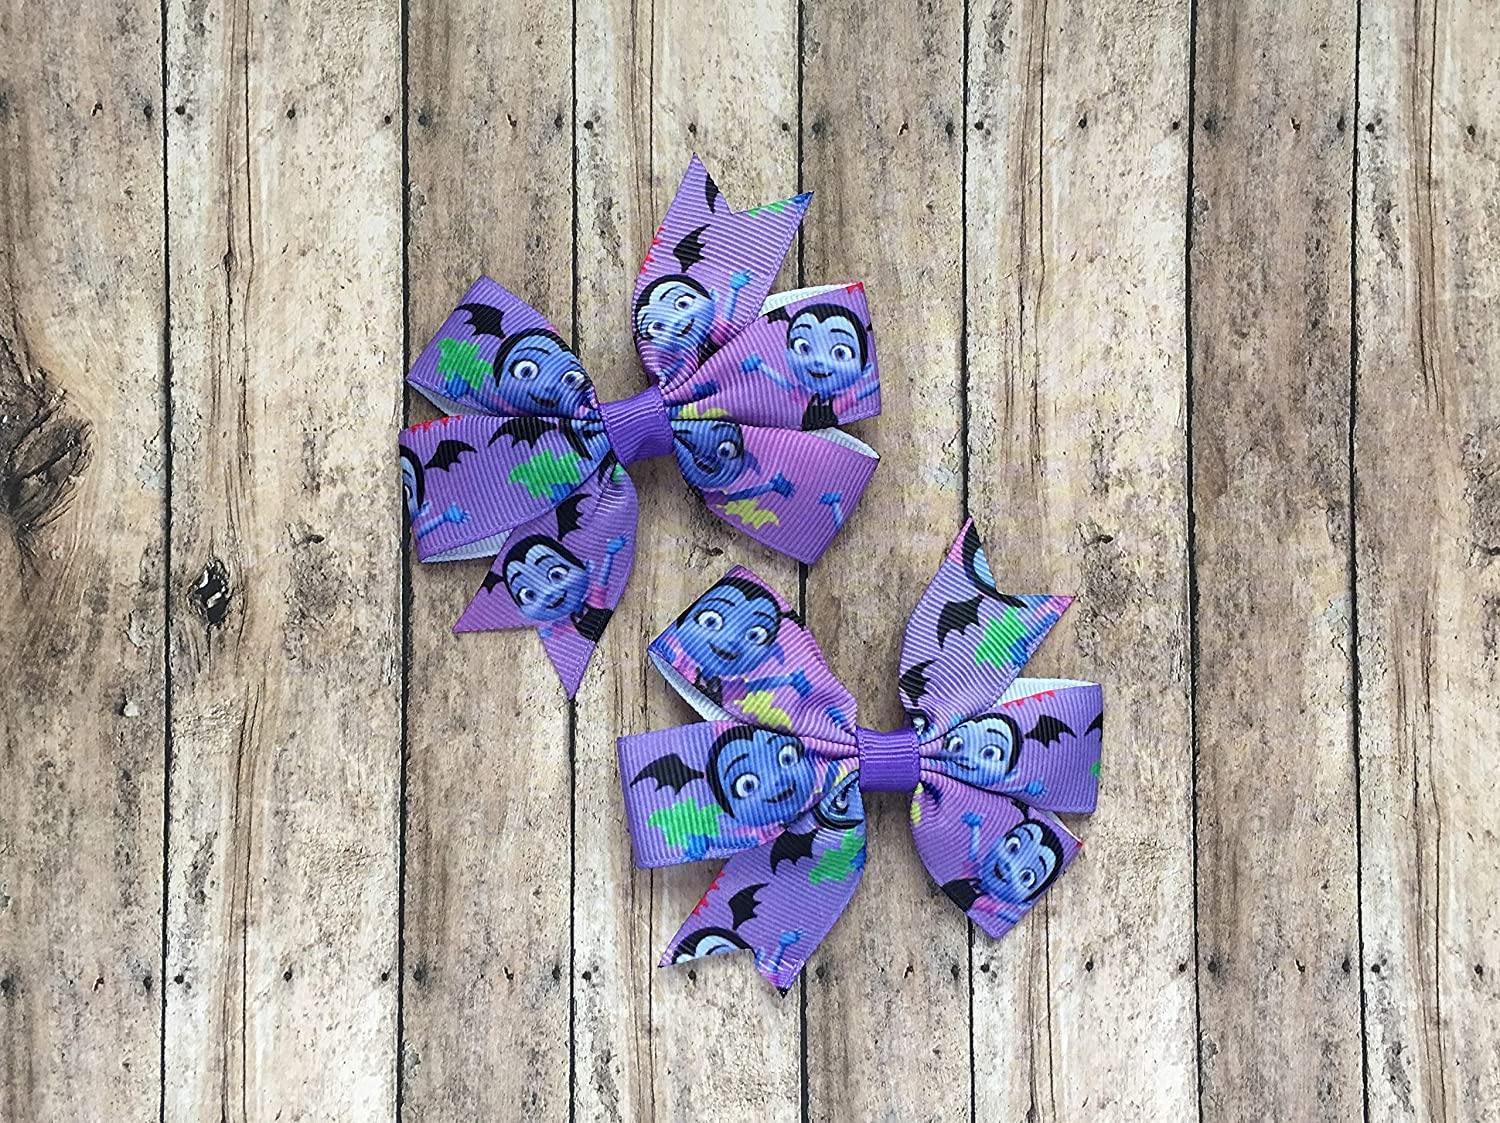 Vamperina Inspired Hair Bows (2) by Inspired Bows